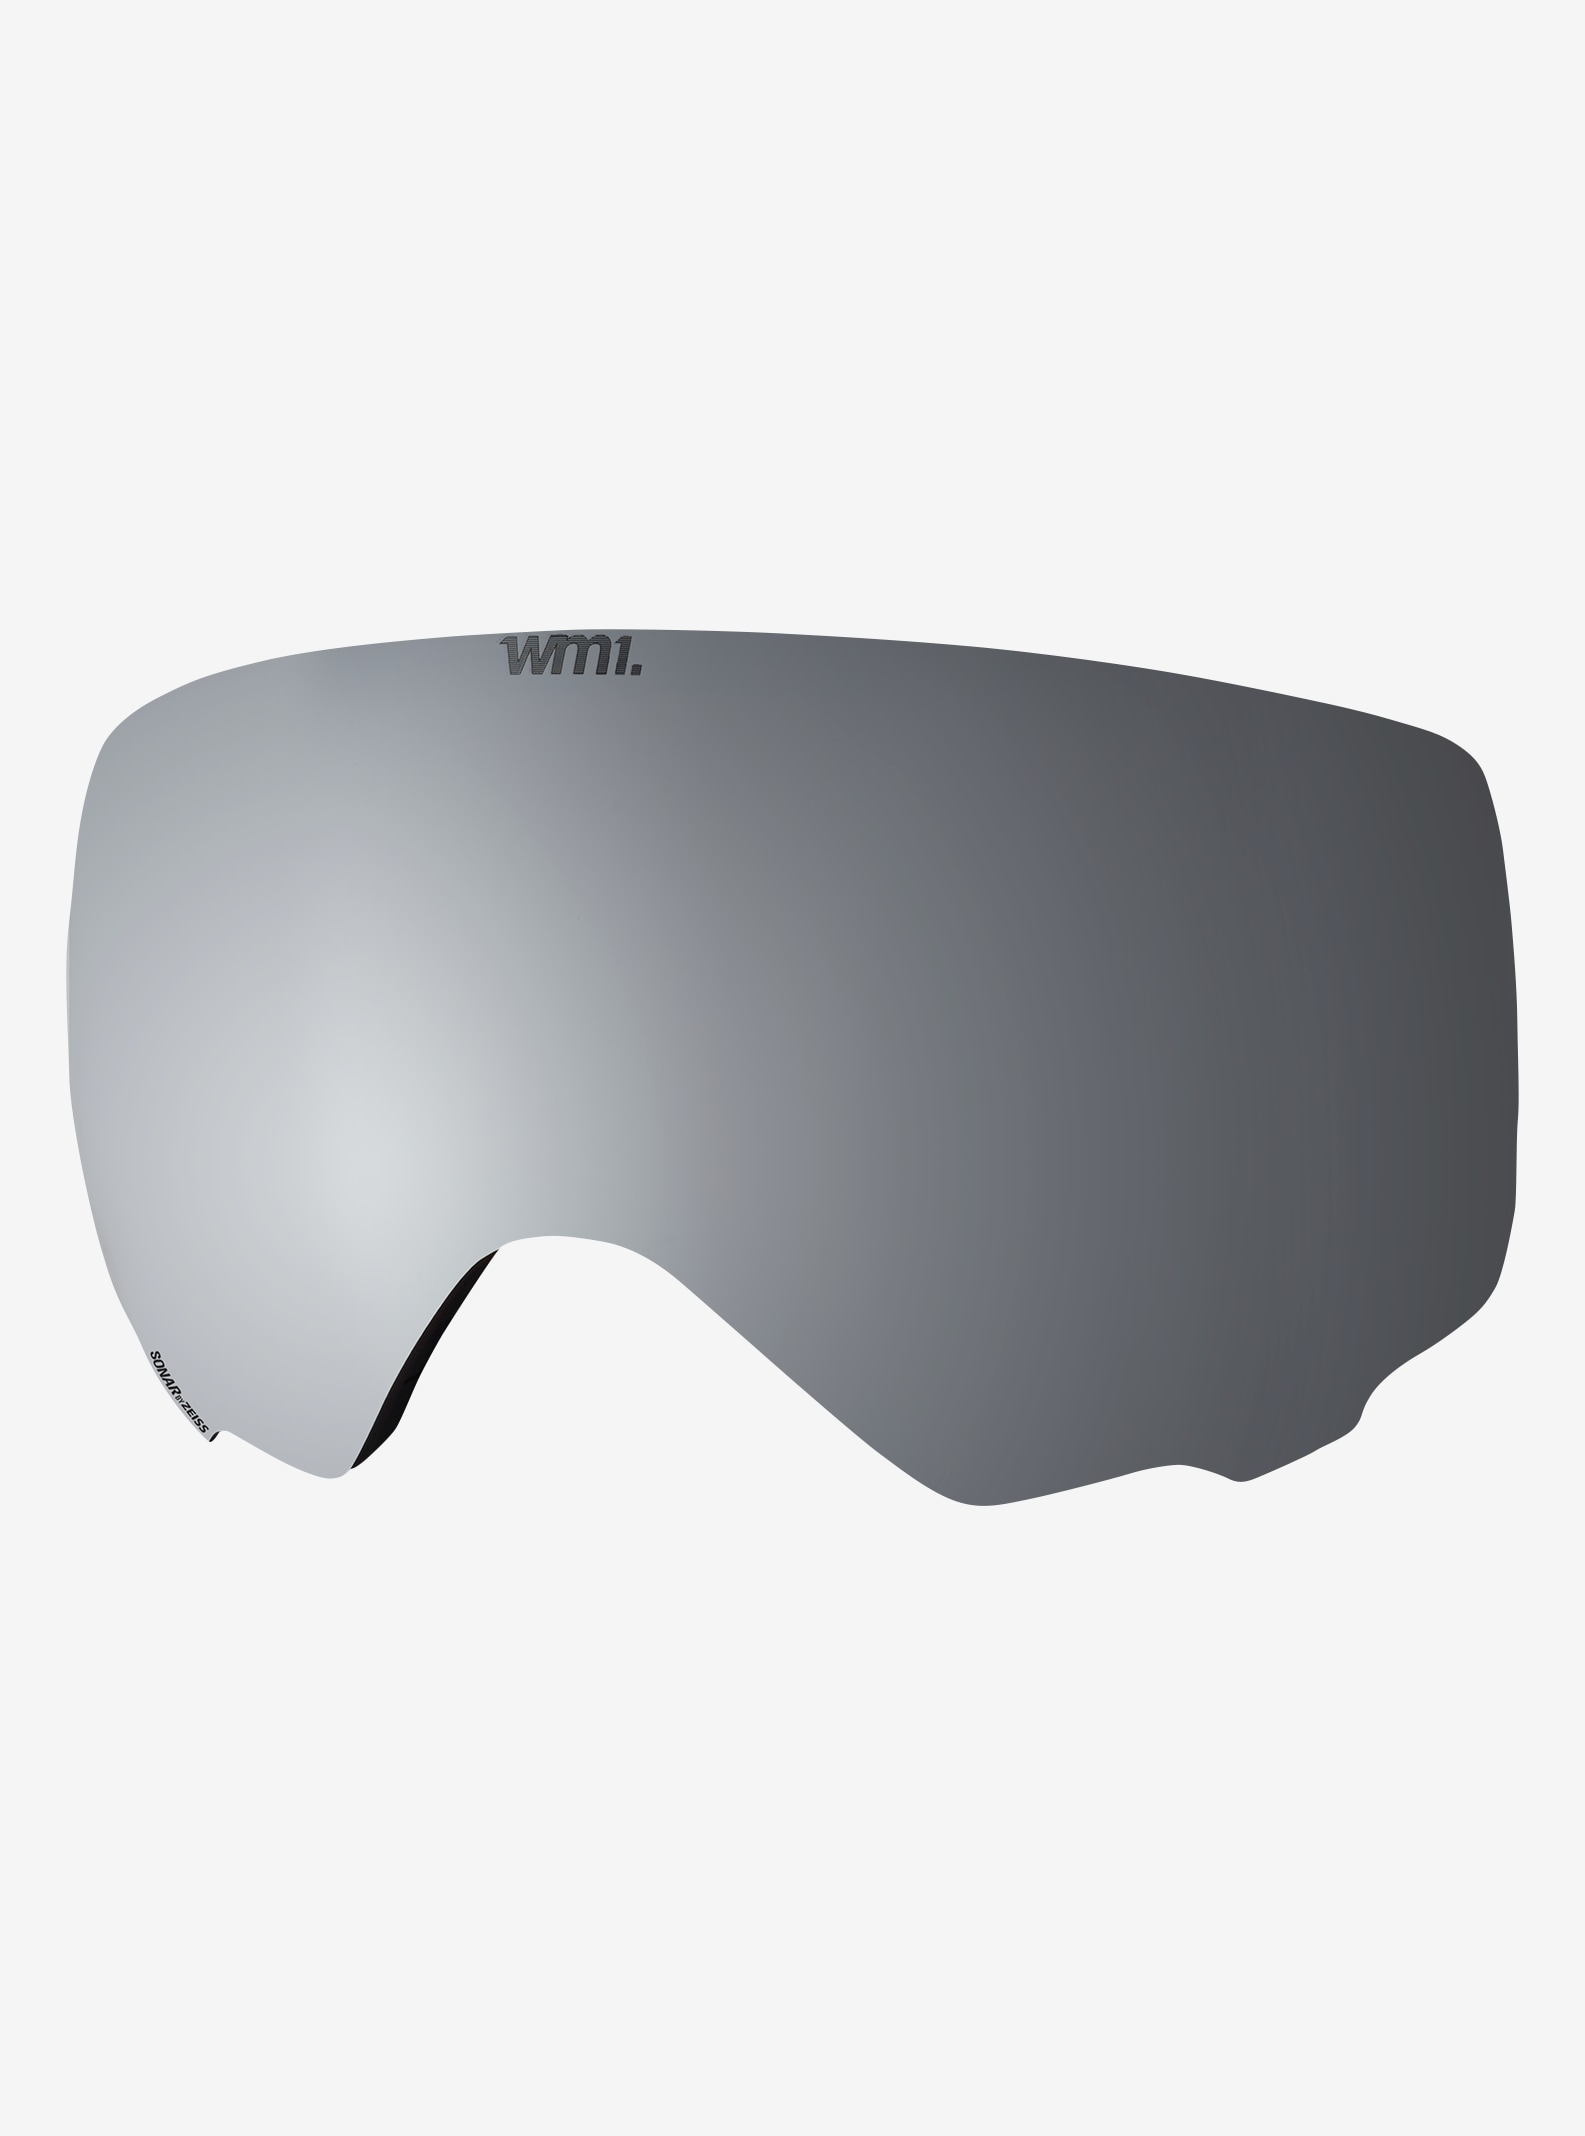 Women's Anon WM1 Lens shown in SONAR Silver (6% VLT)